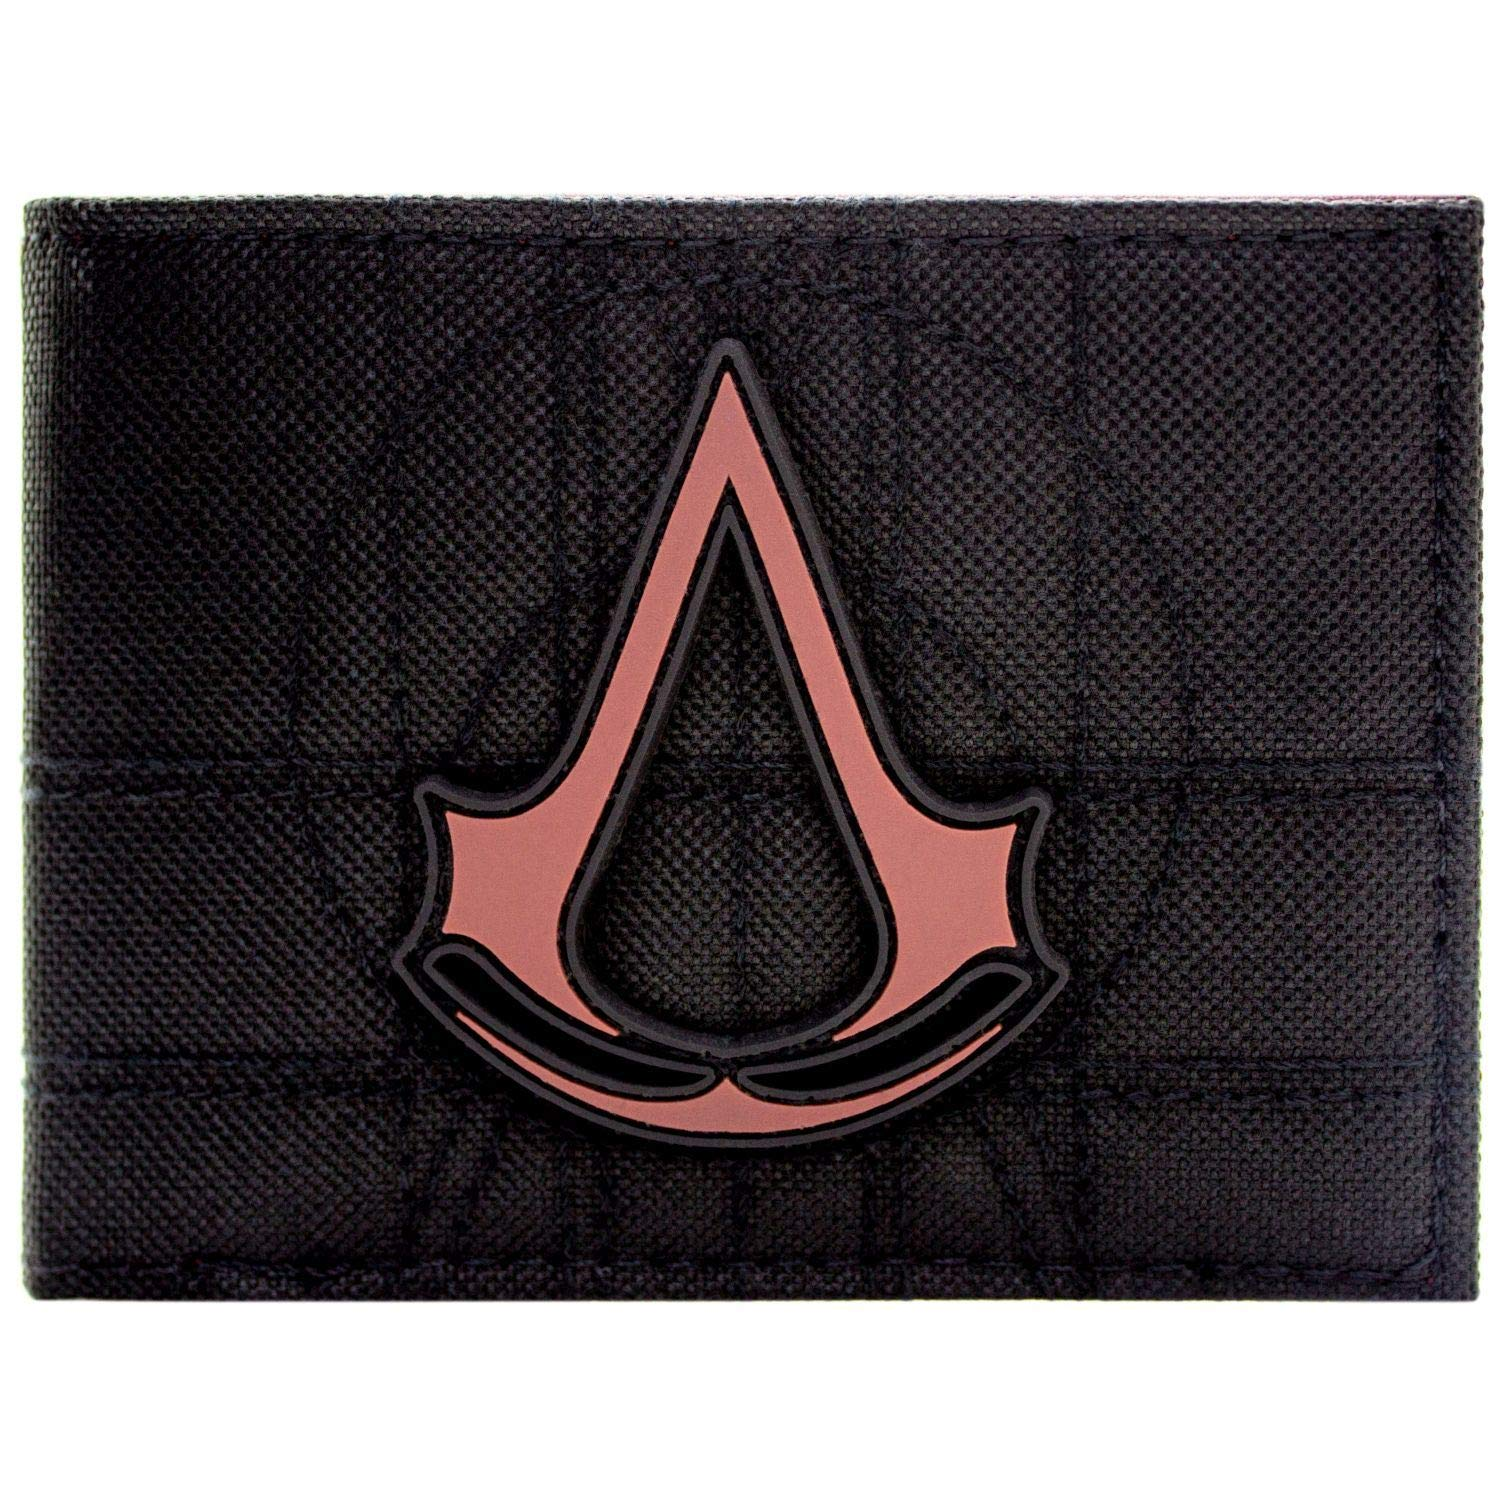 Cartera de Assassins Creed Logo Original Negro 30245